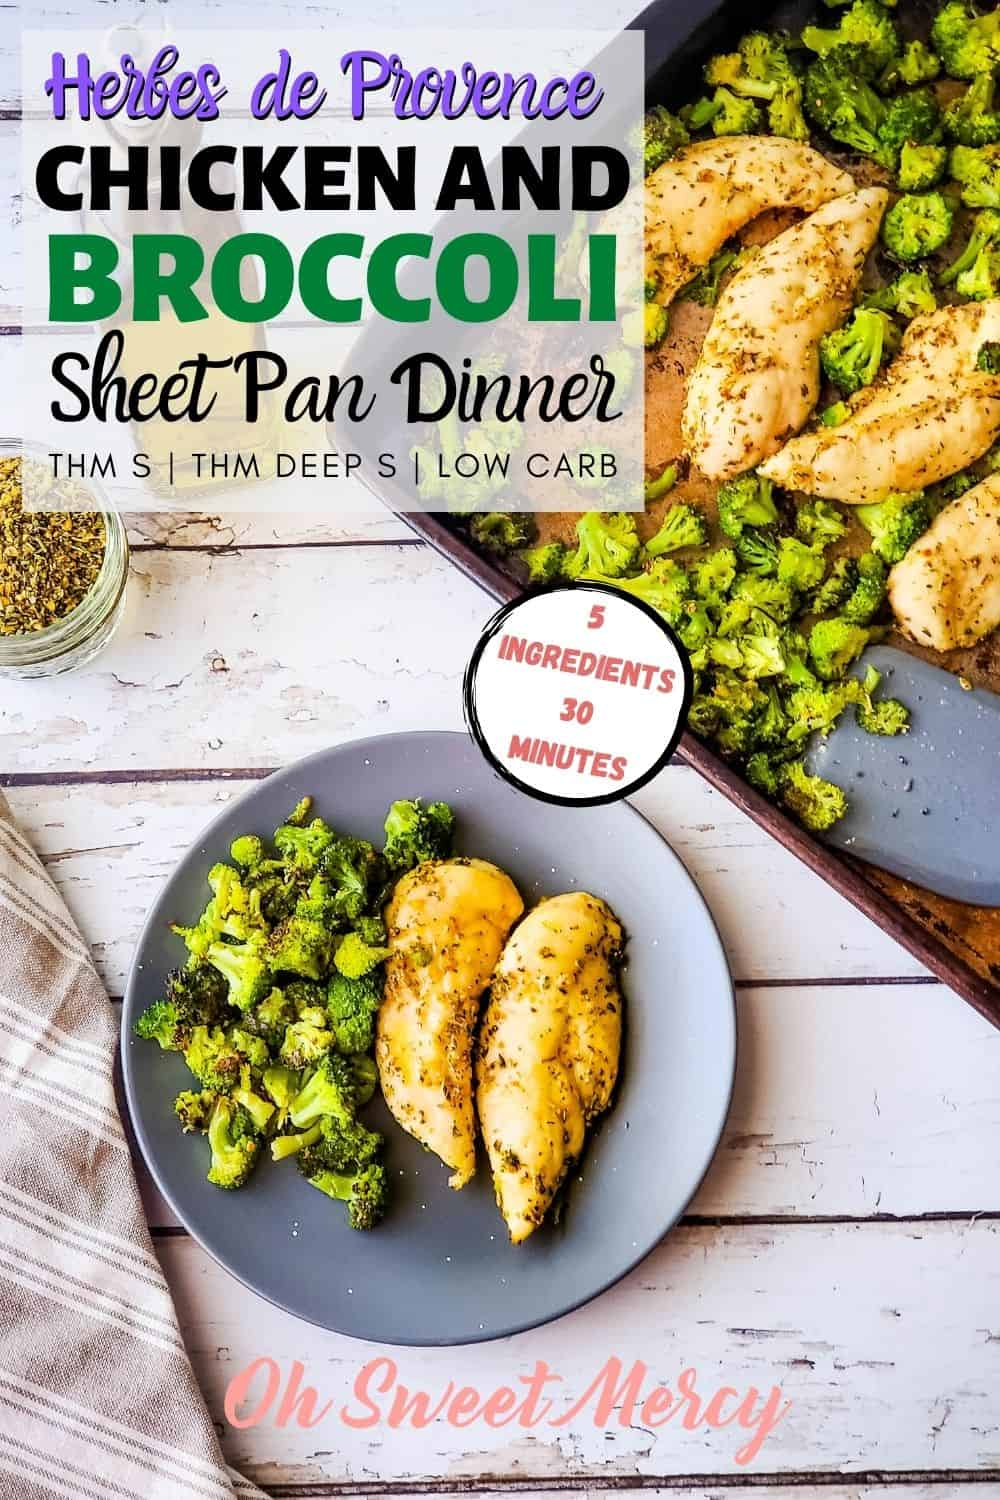 Need supper on the table quickly? Make my easy Chicken and Broccoli Sheet Pan Dinner! Just 5 ingredients and 30 minutes and supper is done. Low carb, THM S, THM Deep S, keto friendly. #thm #lowcarb #keto #realfood #sheetpandinners #herbesdeprovence @ohsweetmercy